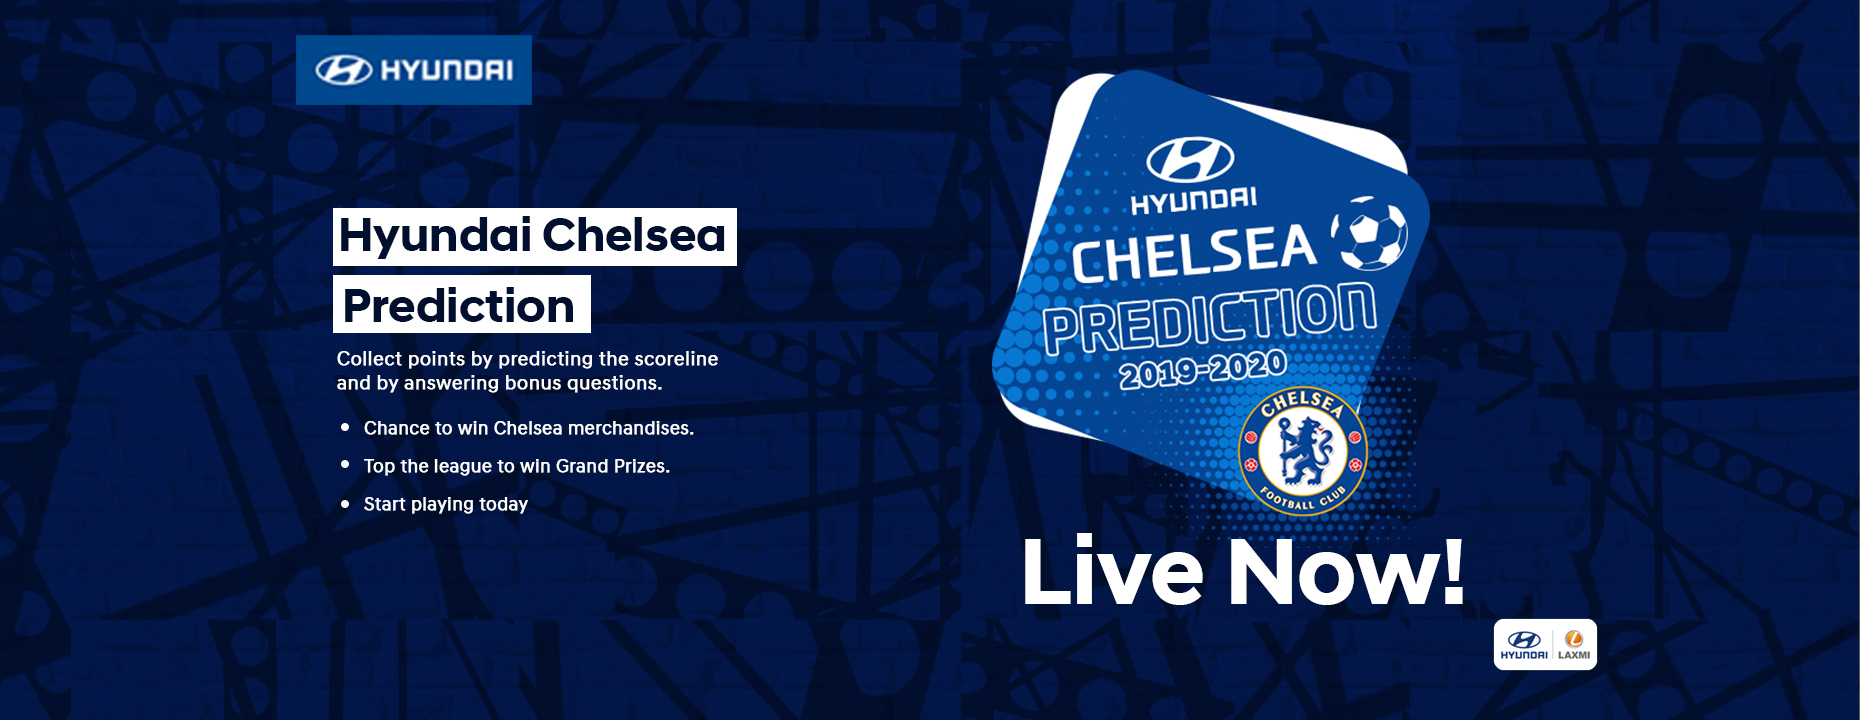 Hyundai Chelsea Prediction